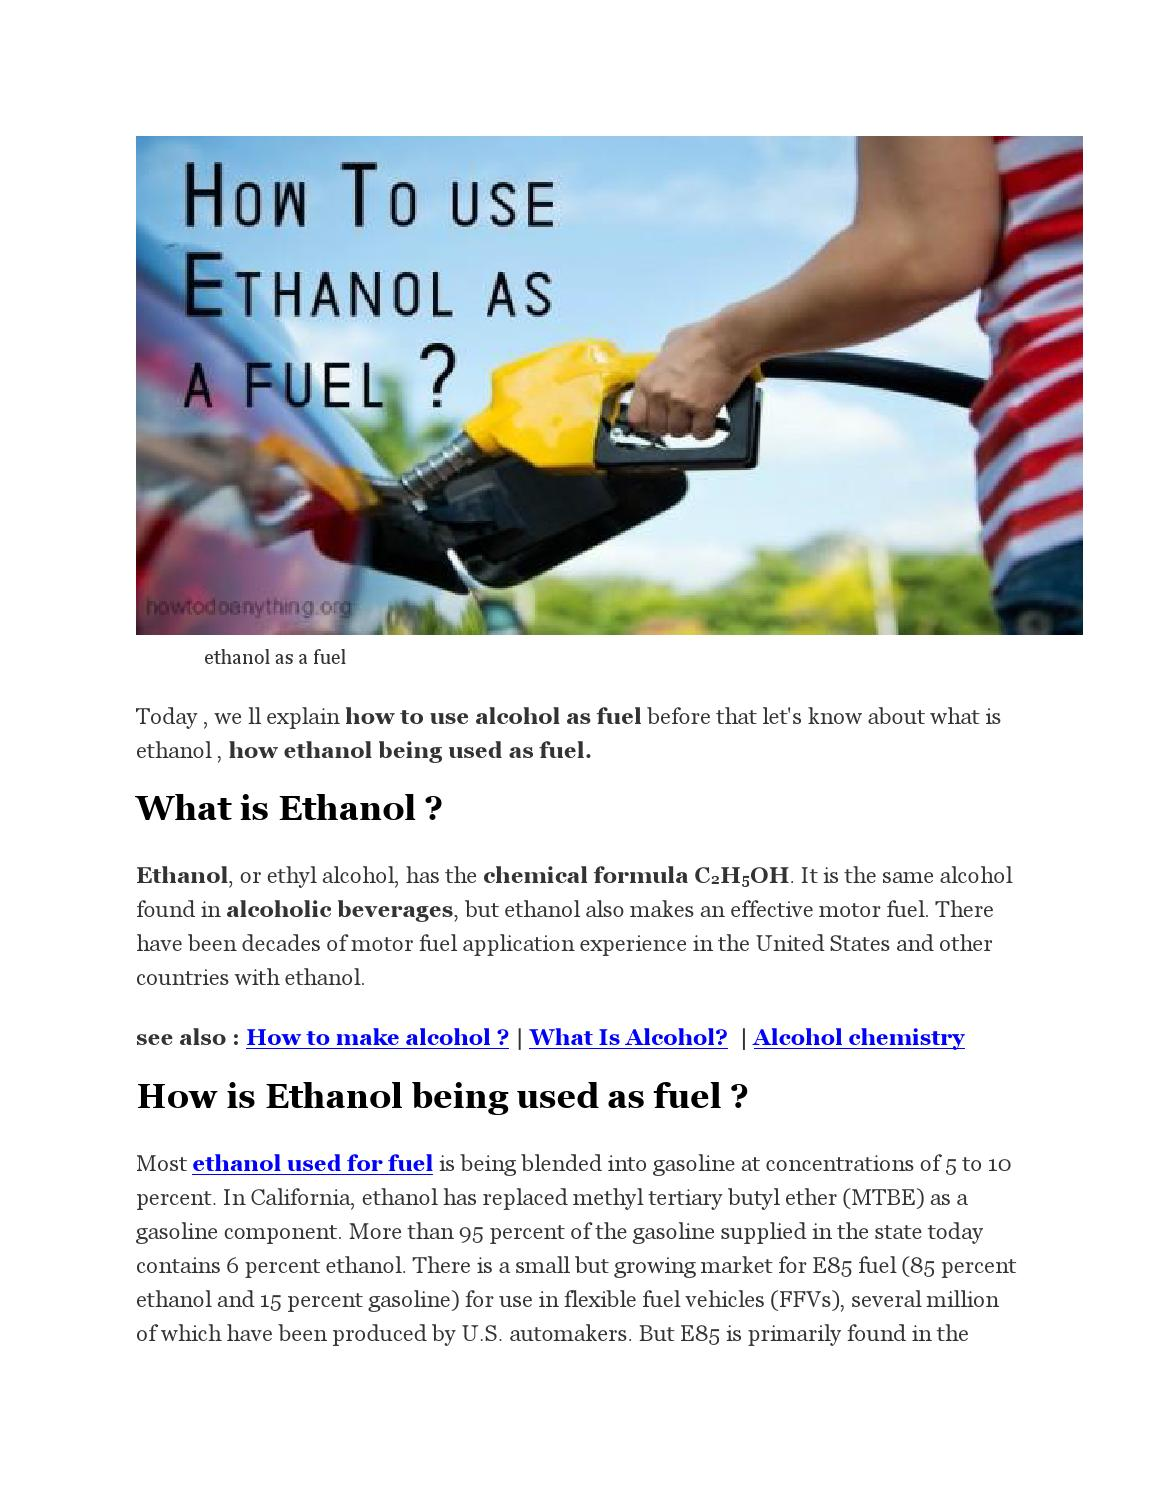 What Is Ethanol >> Advantages And Disadvantages Of Ethanol As A Fuel By Dhruval